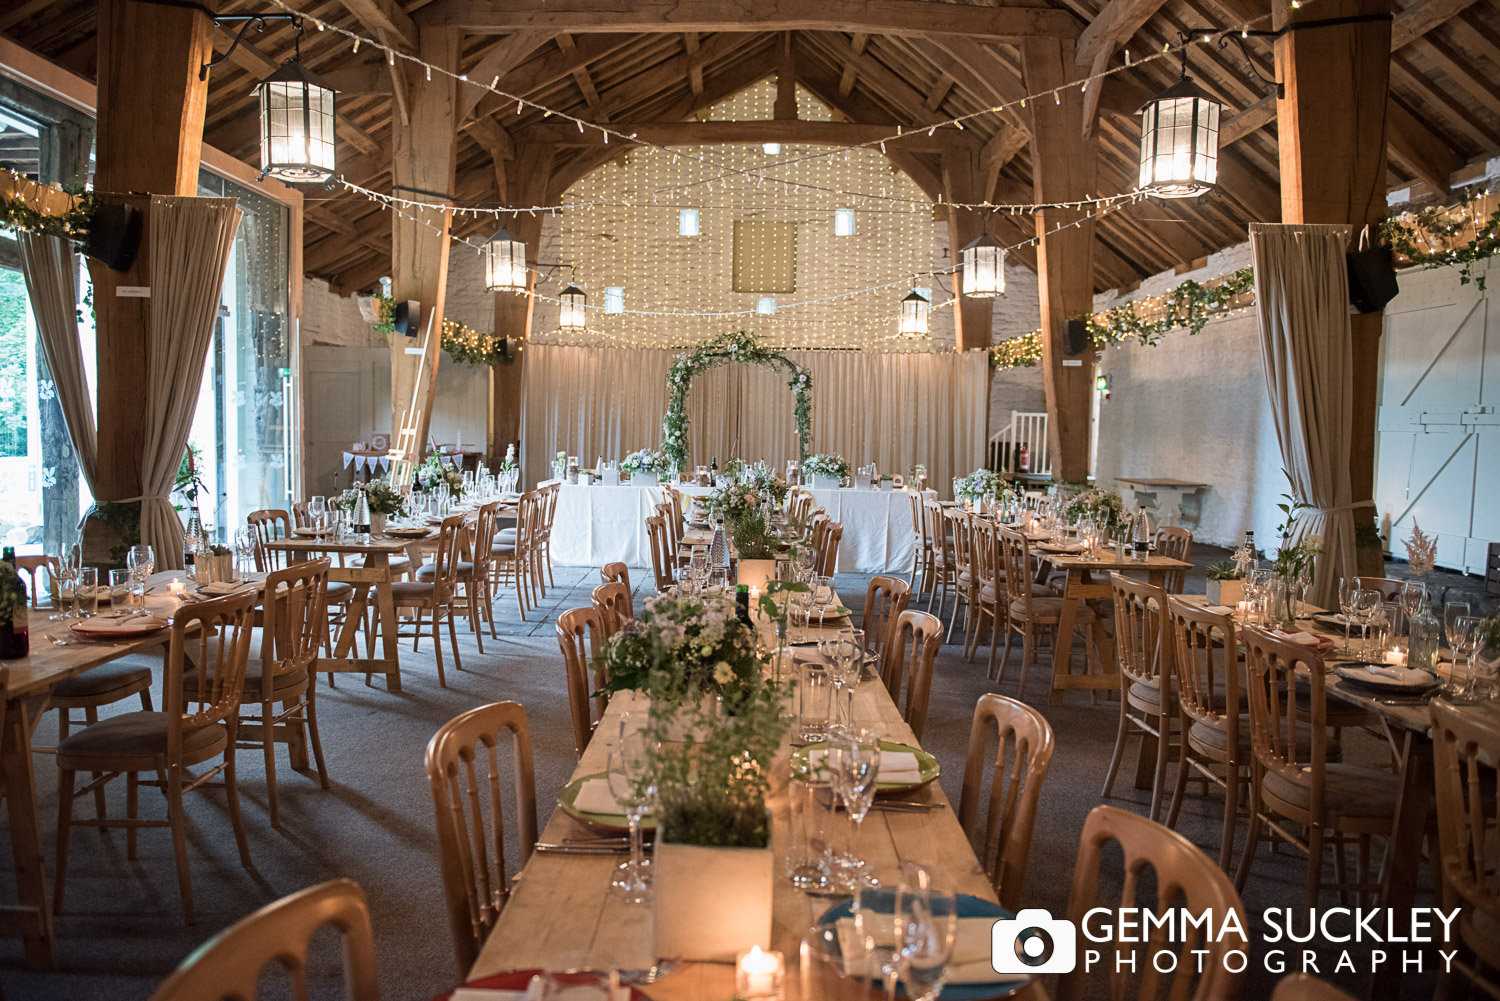 the barn decorated for a wedding at east riddlesden hall